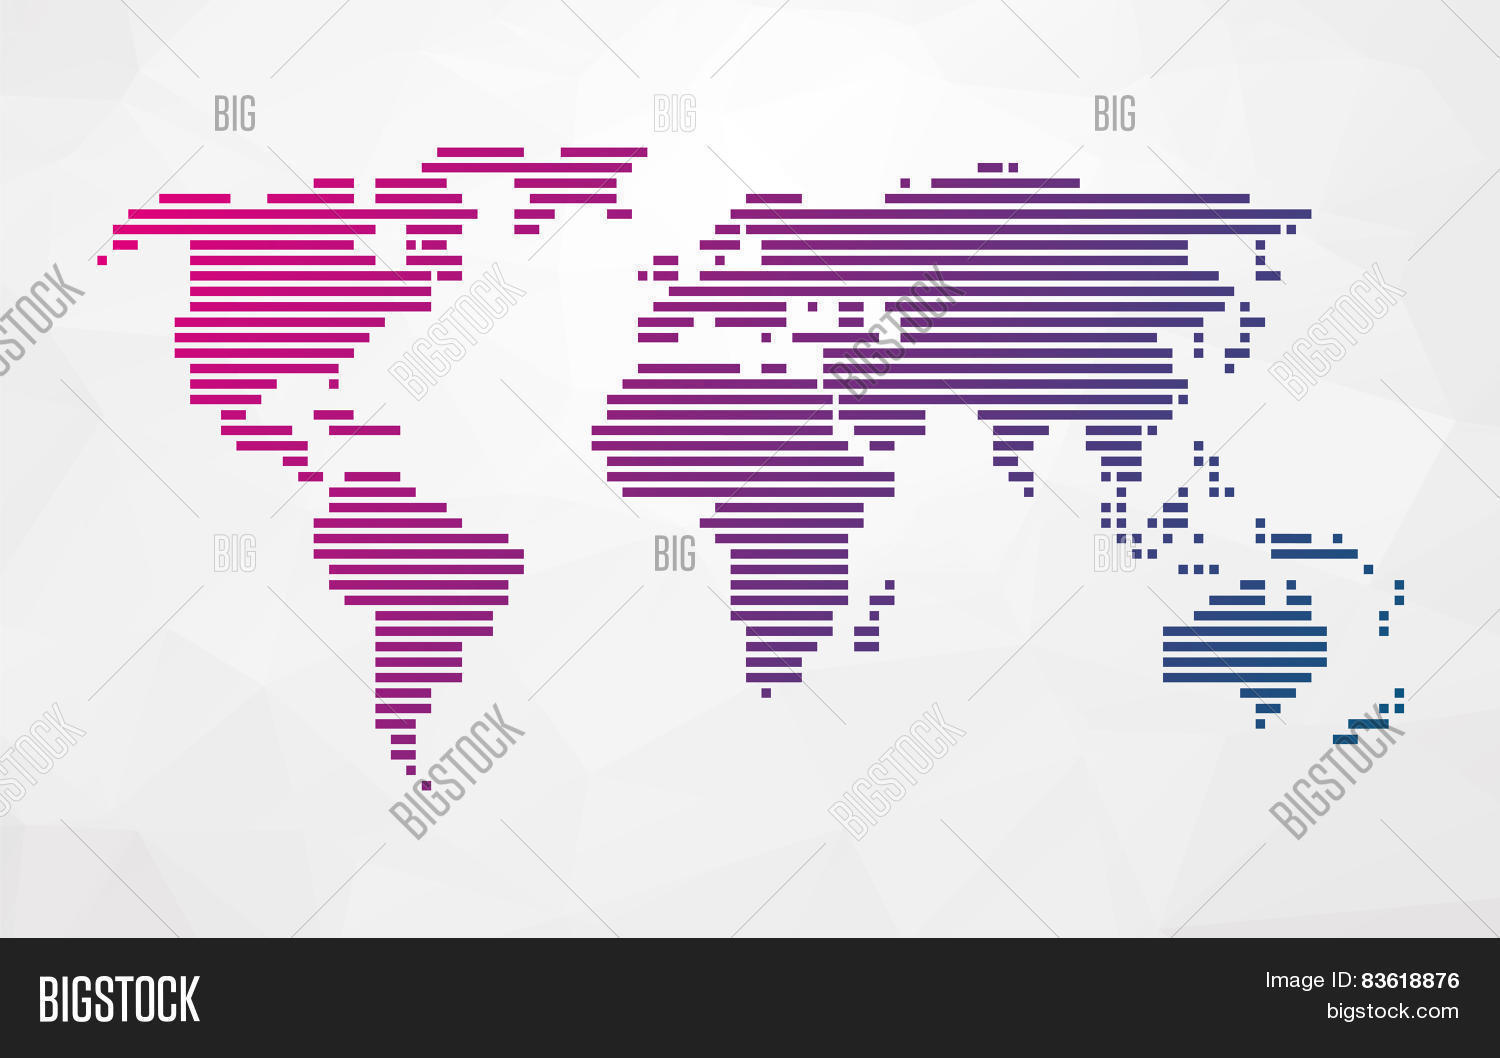 Simple world map made vector photo free trial bigstock simple world map made up of colored stripes on a bright triangular background gumiabroncs Image collections